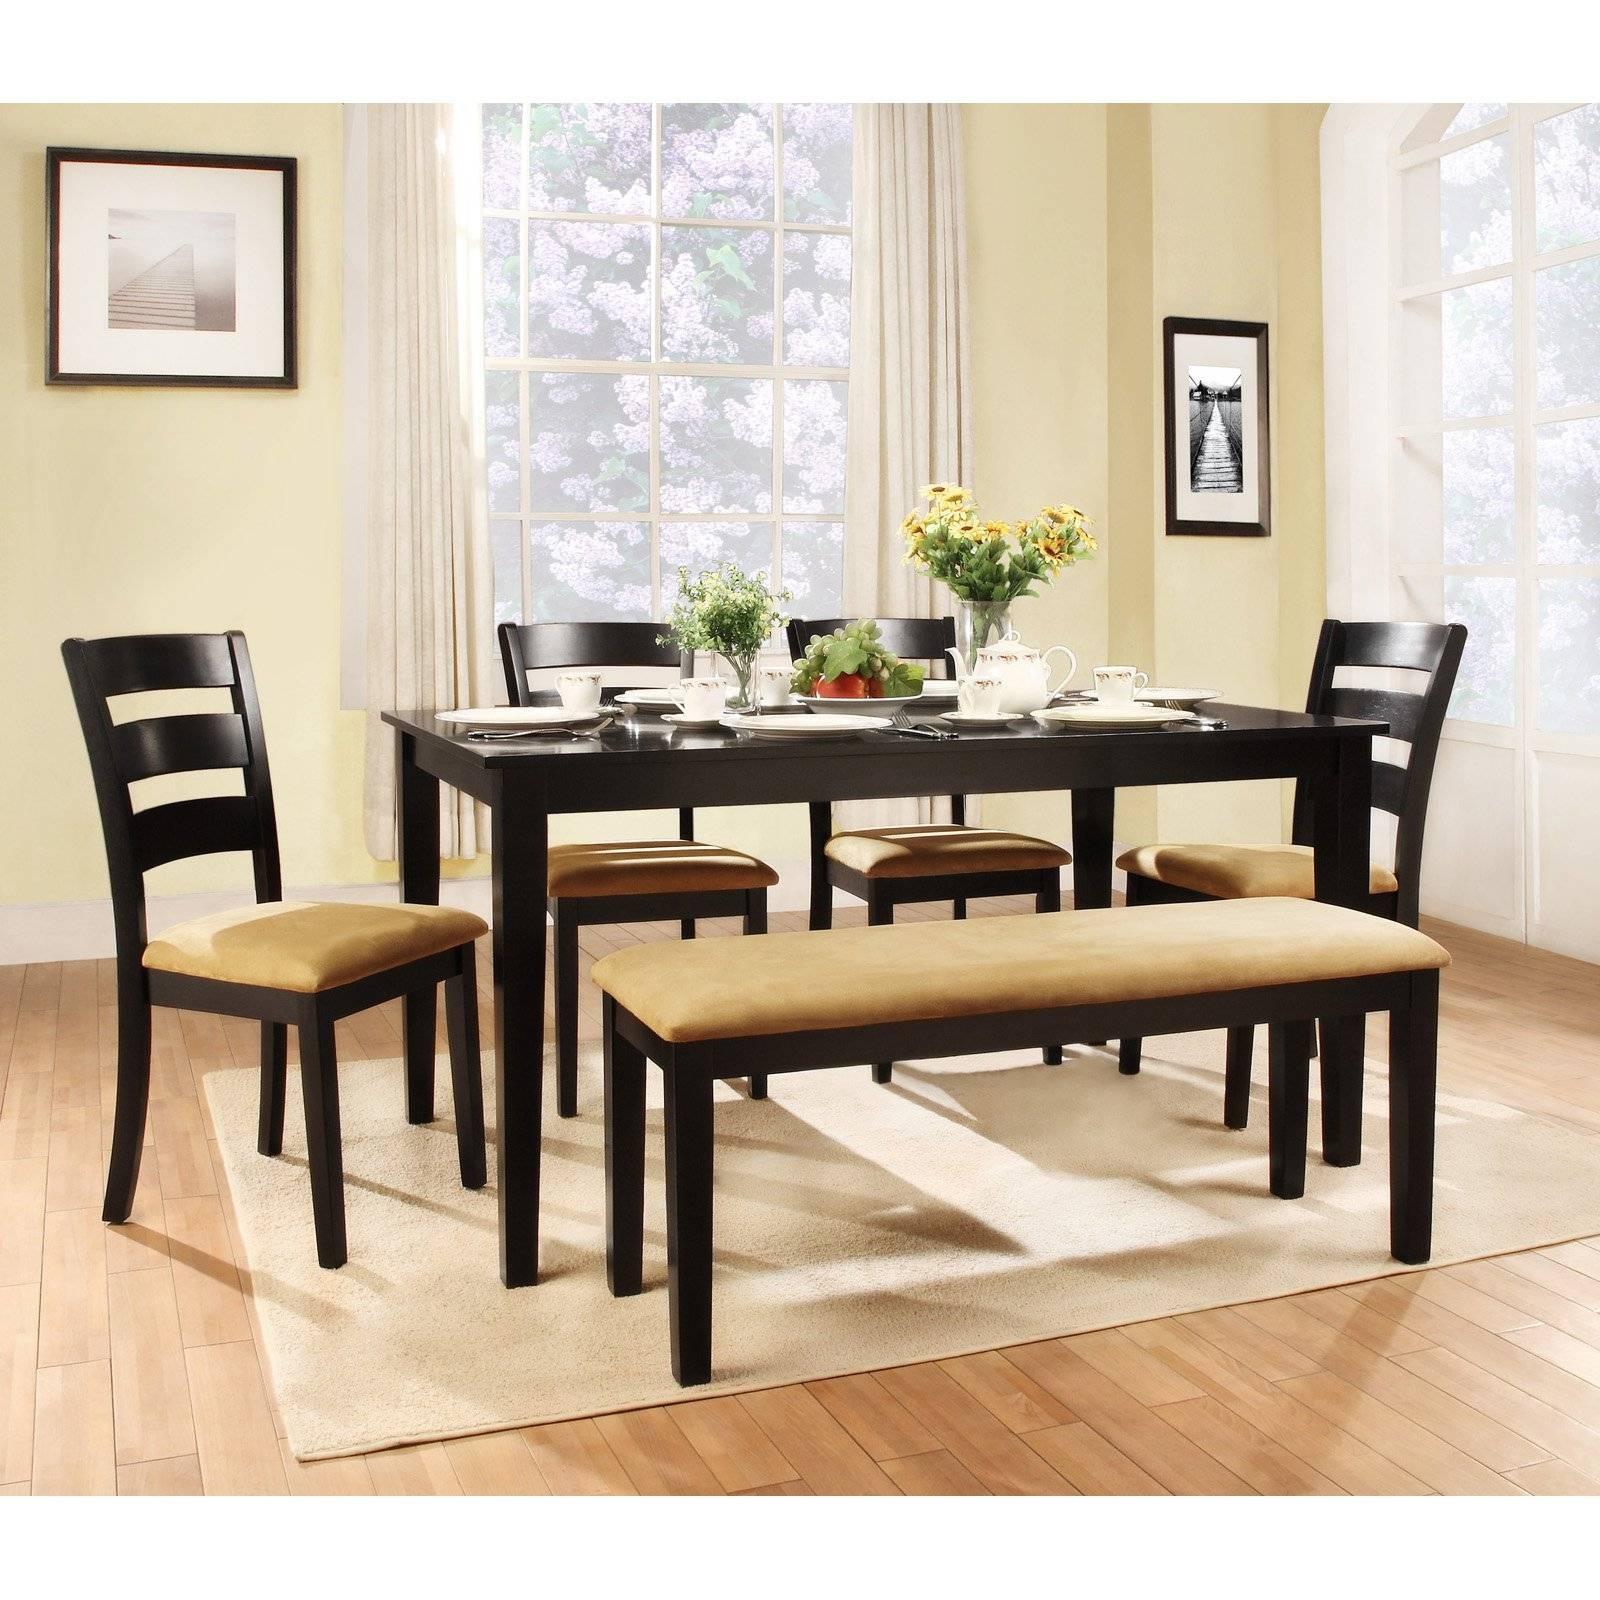 Weston Home Tibalt 6 Piece Rectangle Black Dining Table Set - 60 intended for Dining Sofa Chairs (Image 14 of 15)